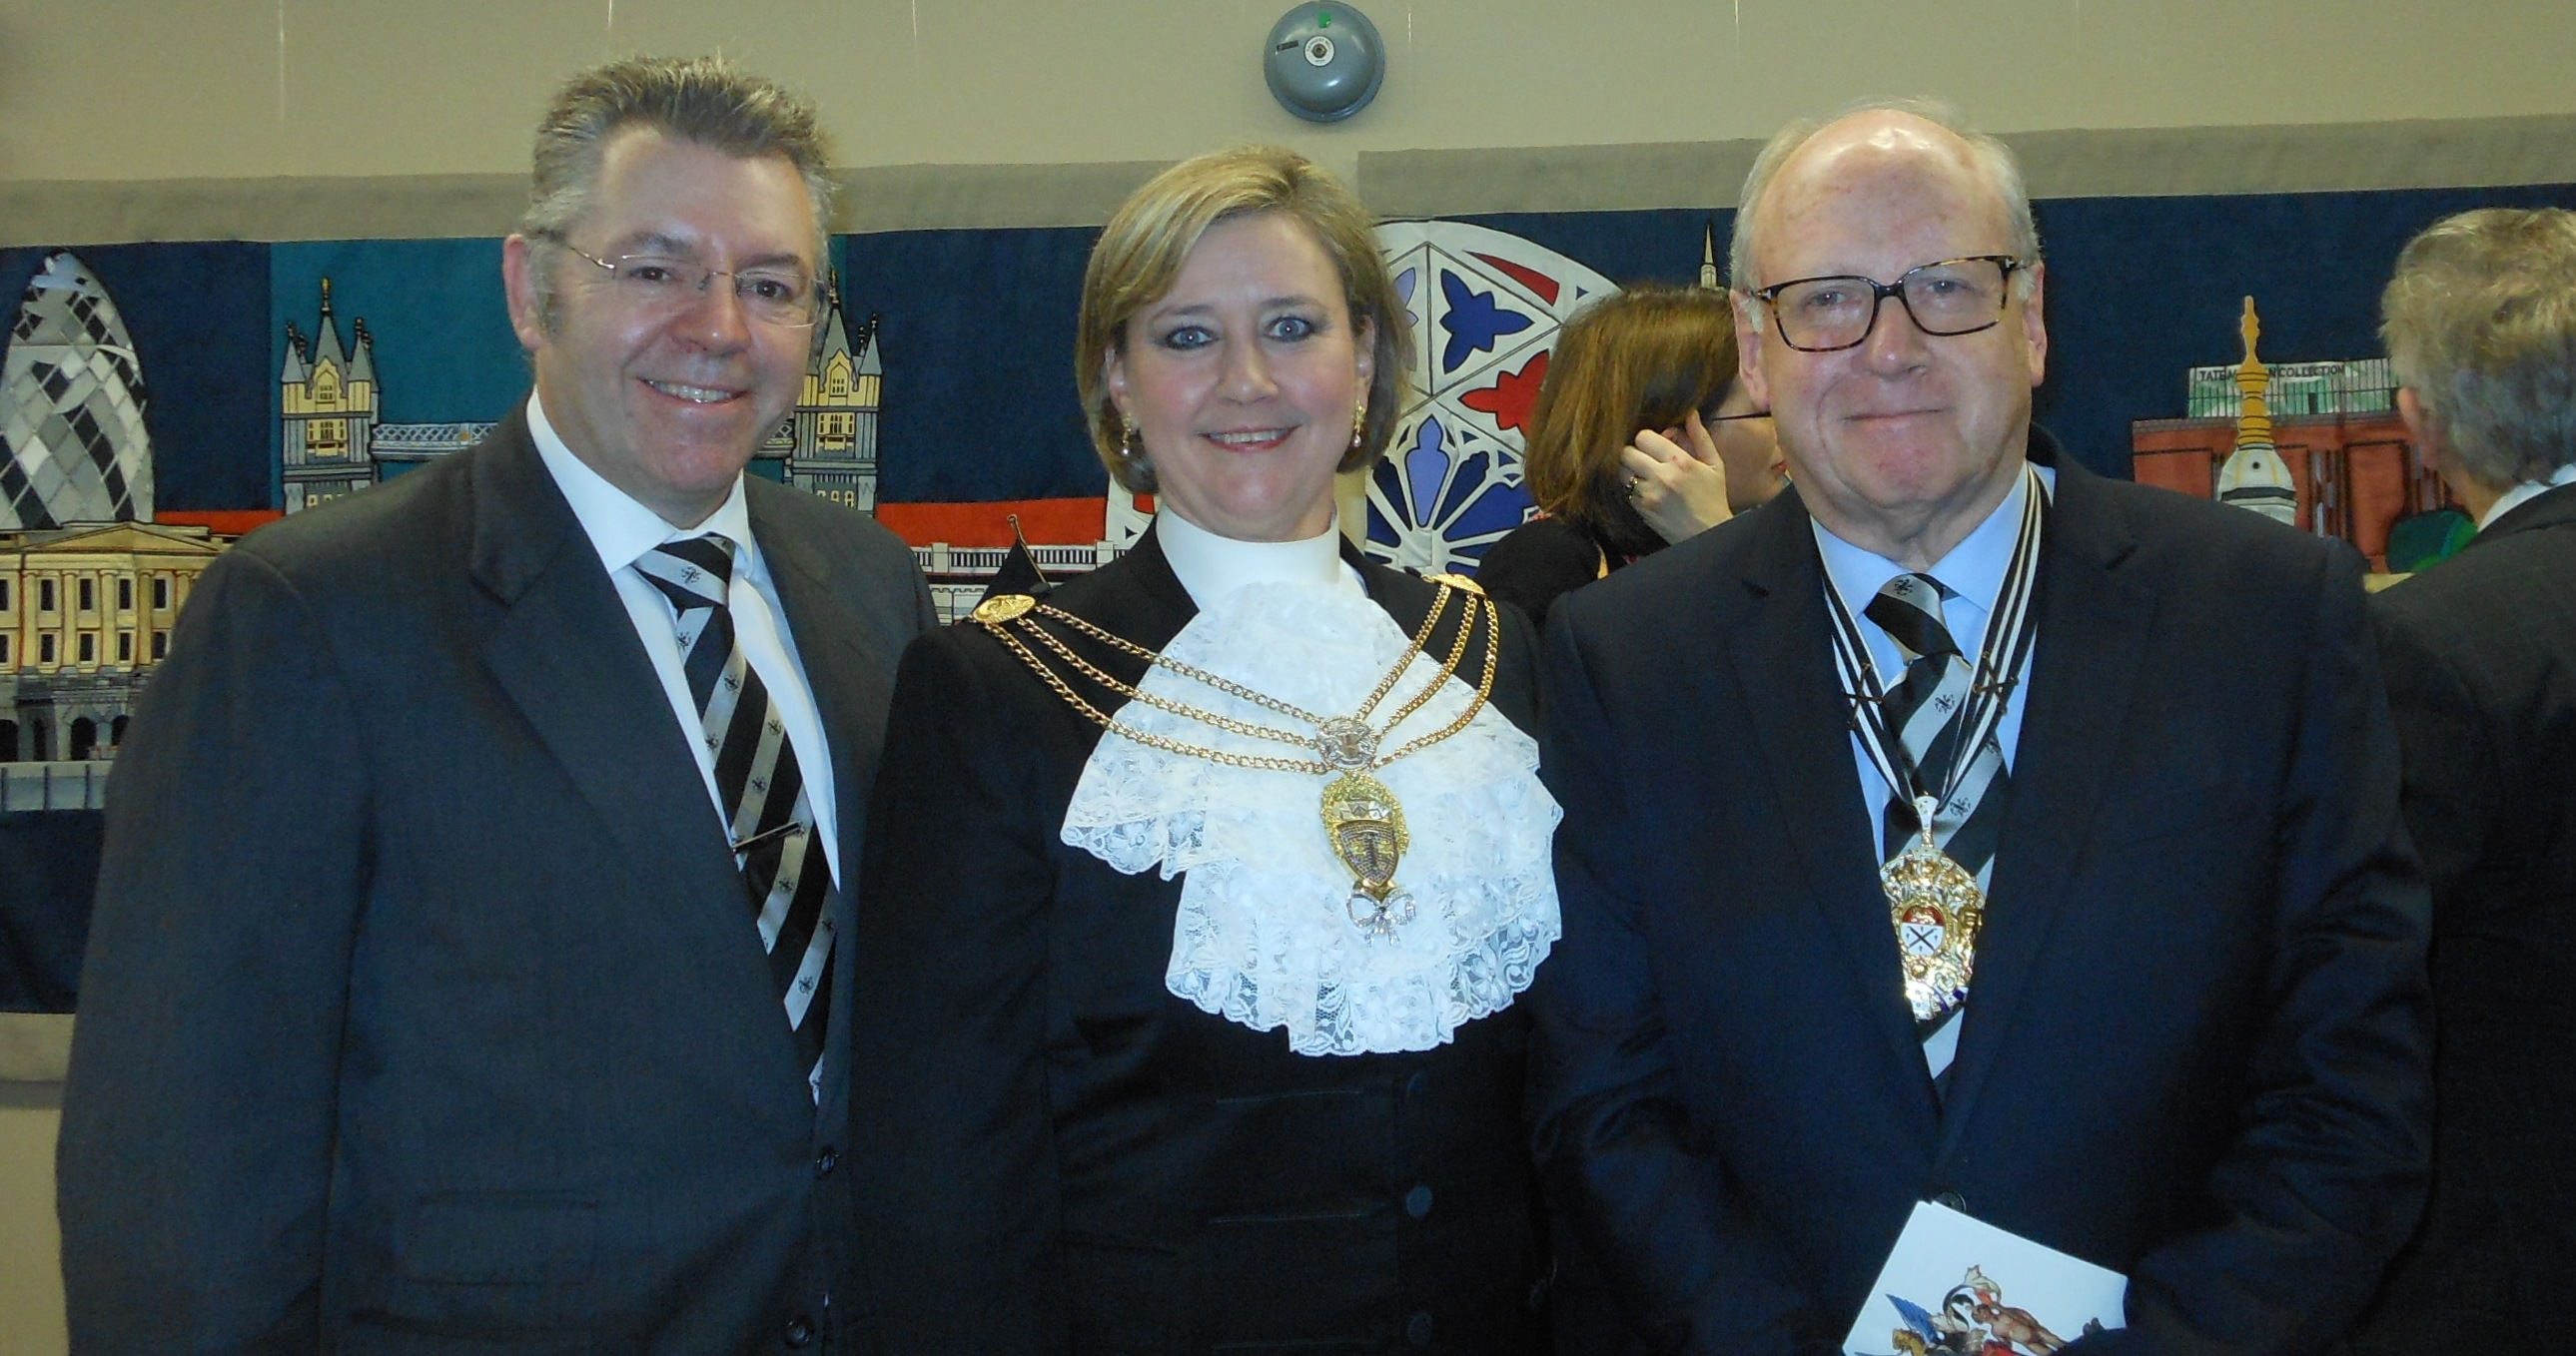 Right to left: The Master Glazier, Duncan Gee, The Sheriff of London Dr Christine Rigden and David Stringer-Lamarre